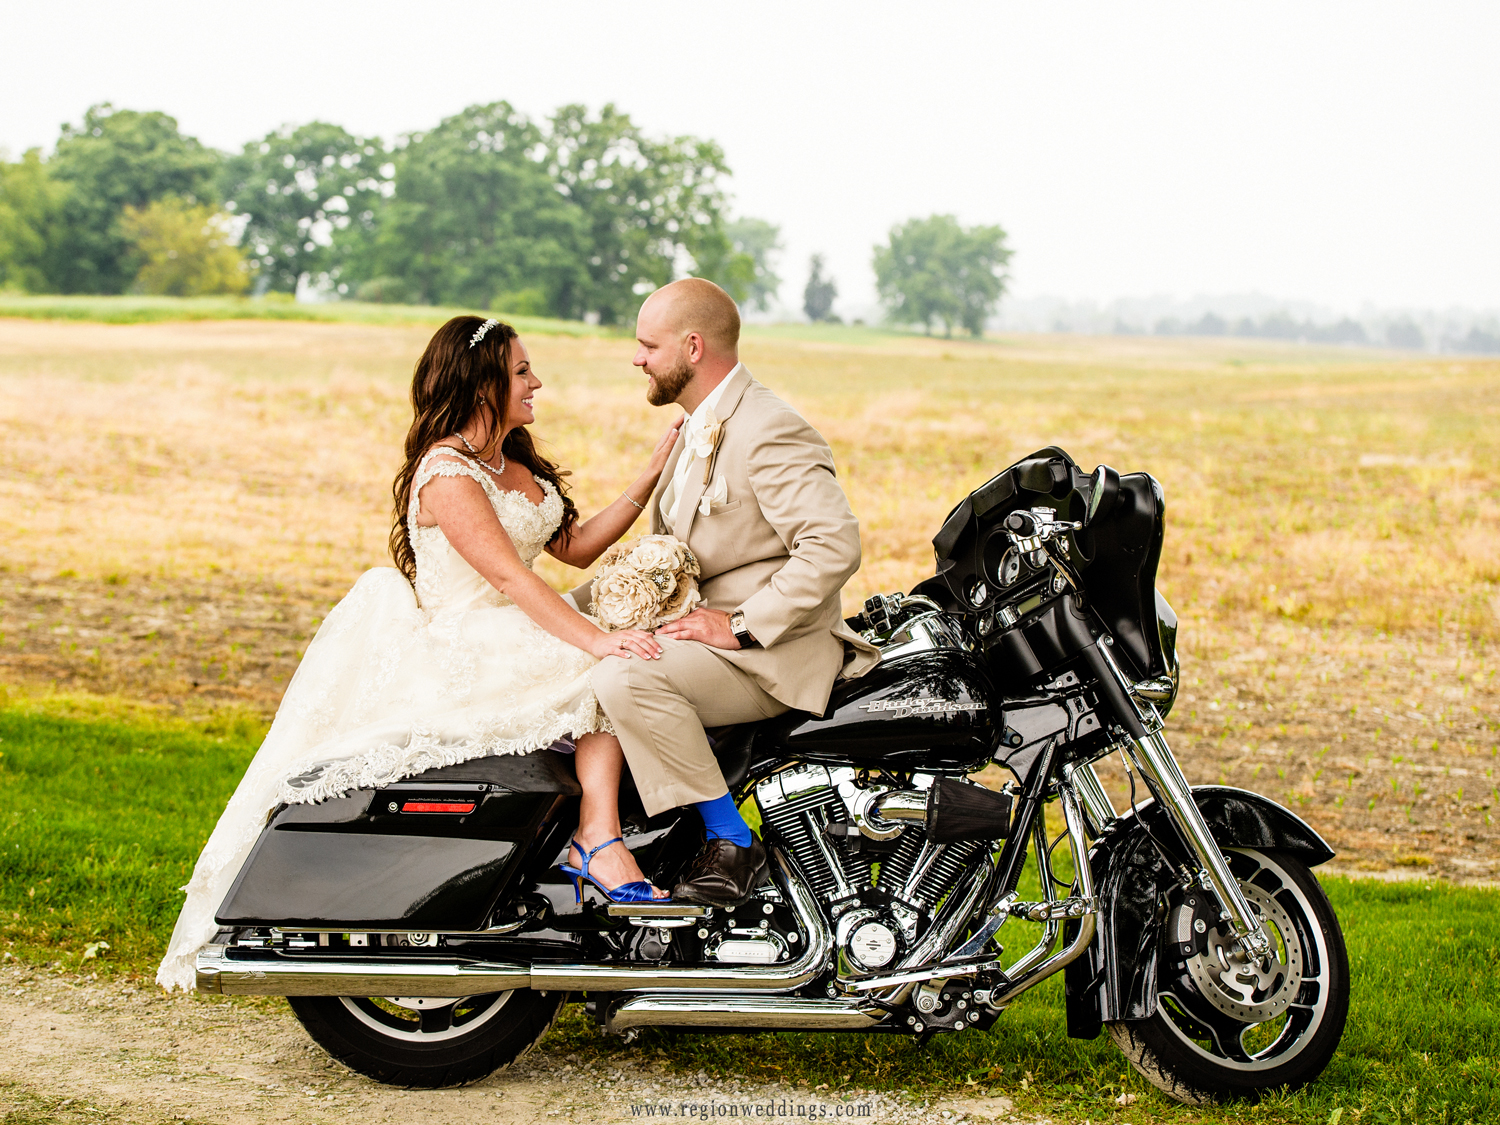 The bride and groom face each other on their Harley Davidson bike with farmland as their backdrop.